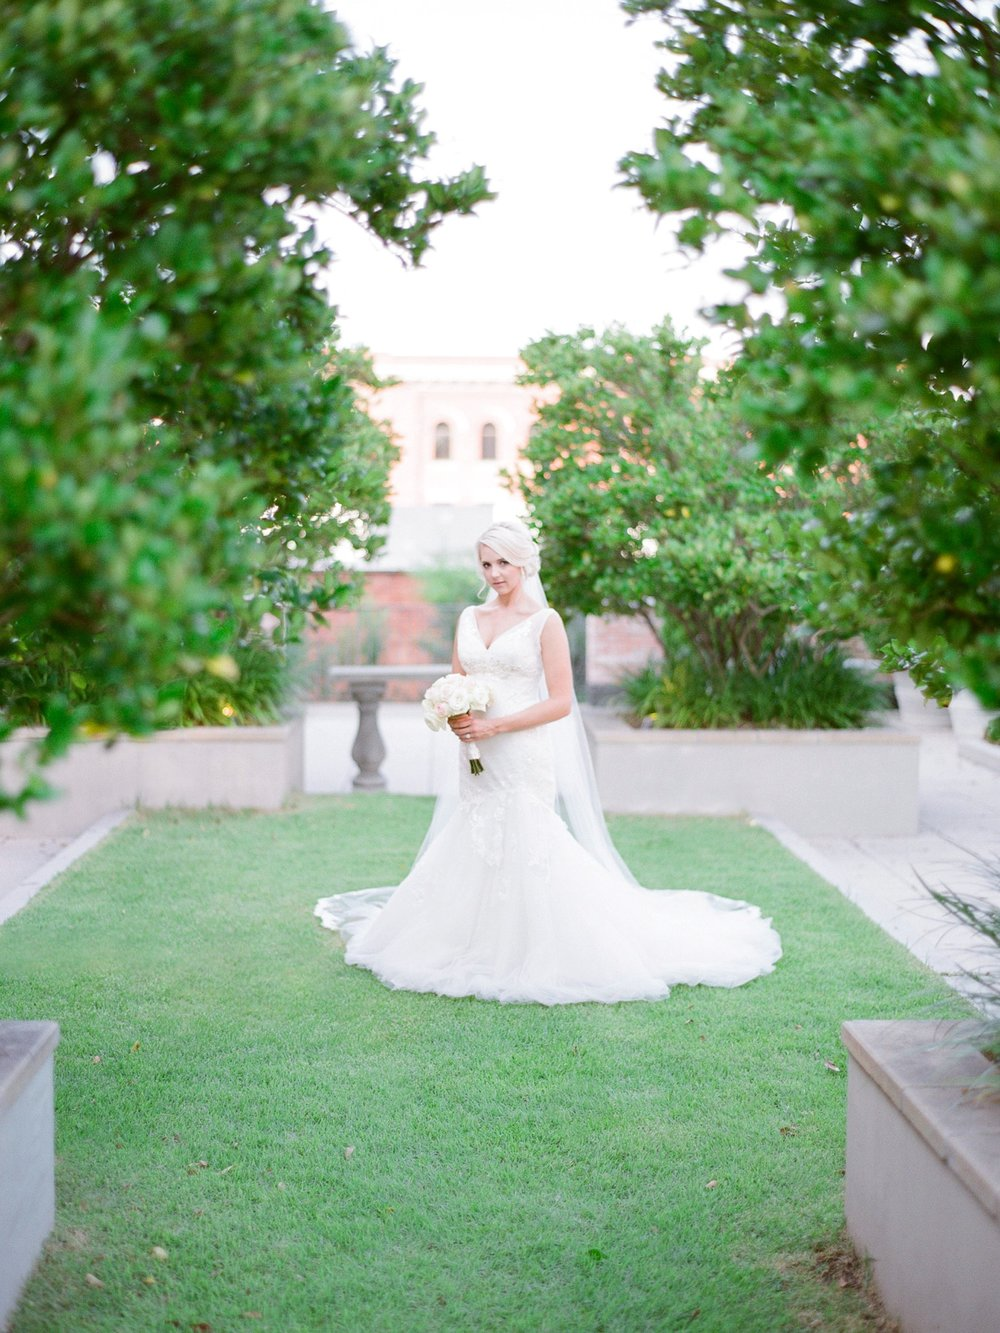 Enzoani Irina real bride_martha stewart wedding_fine art_beautiful bride_montgomery wedding photographer_birmingham wedding photographer_destin rosemary alys beach 30A luxury wedding photographer